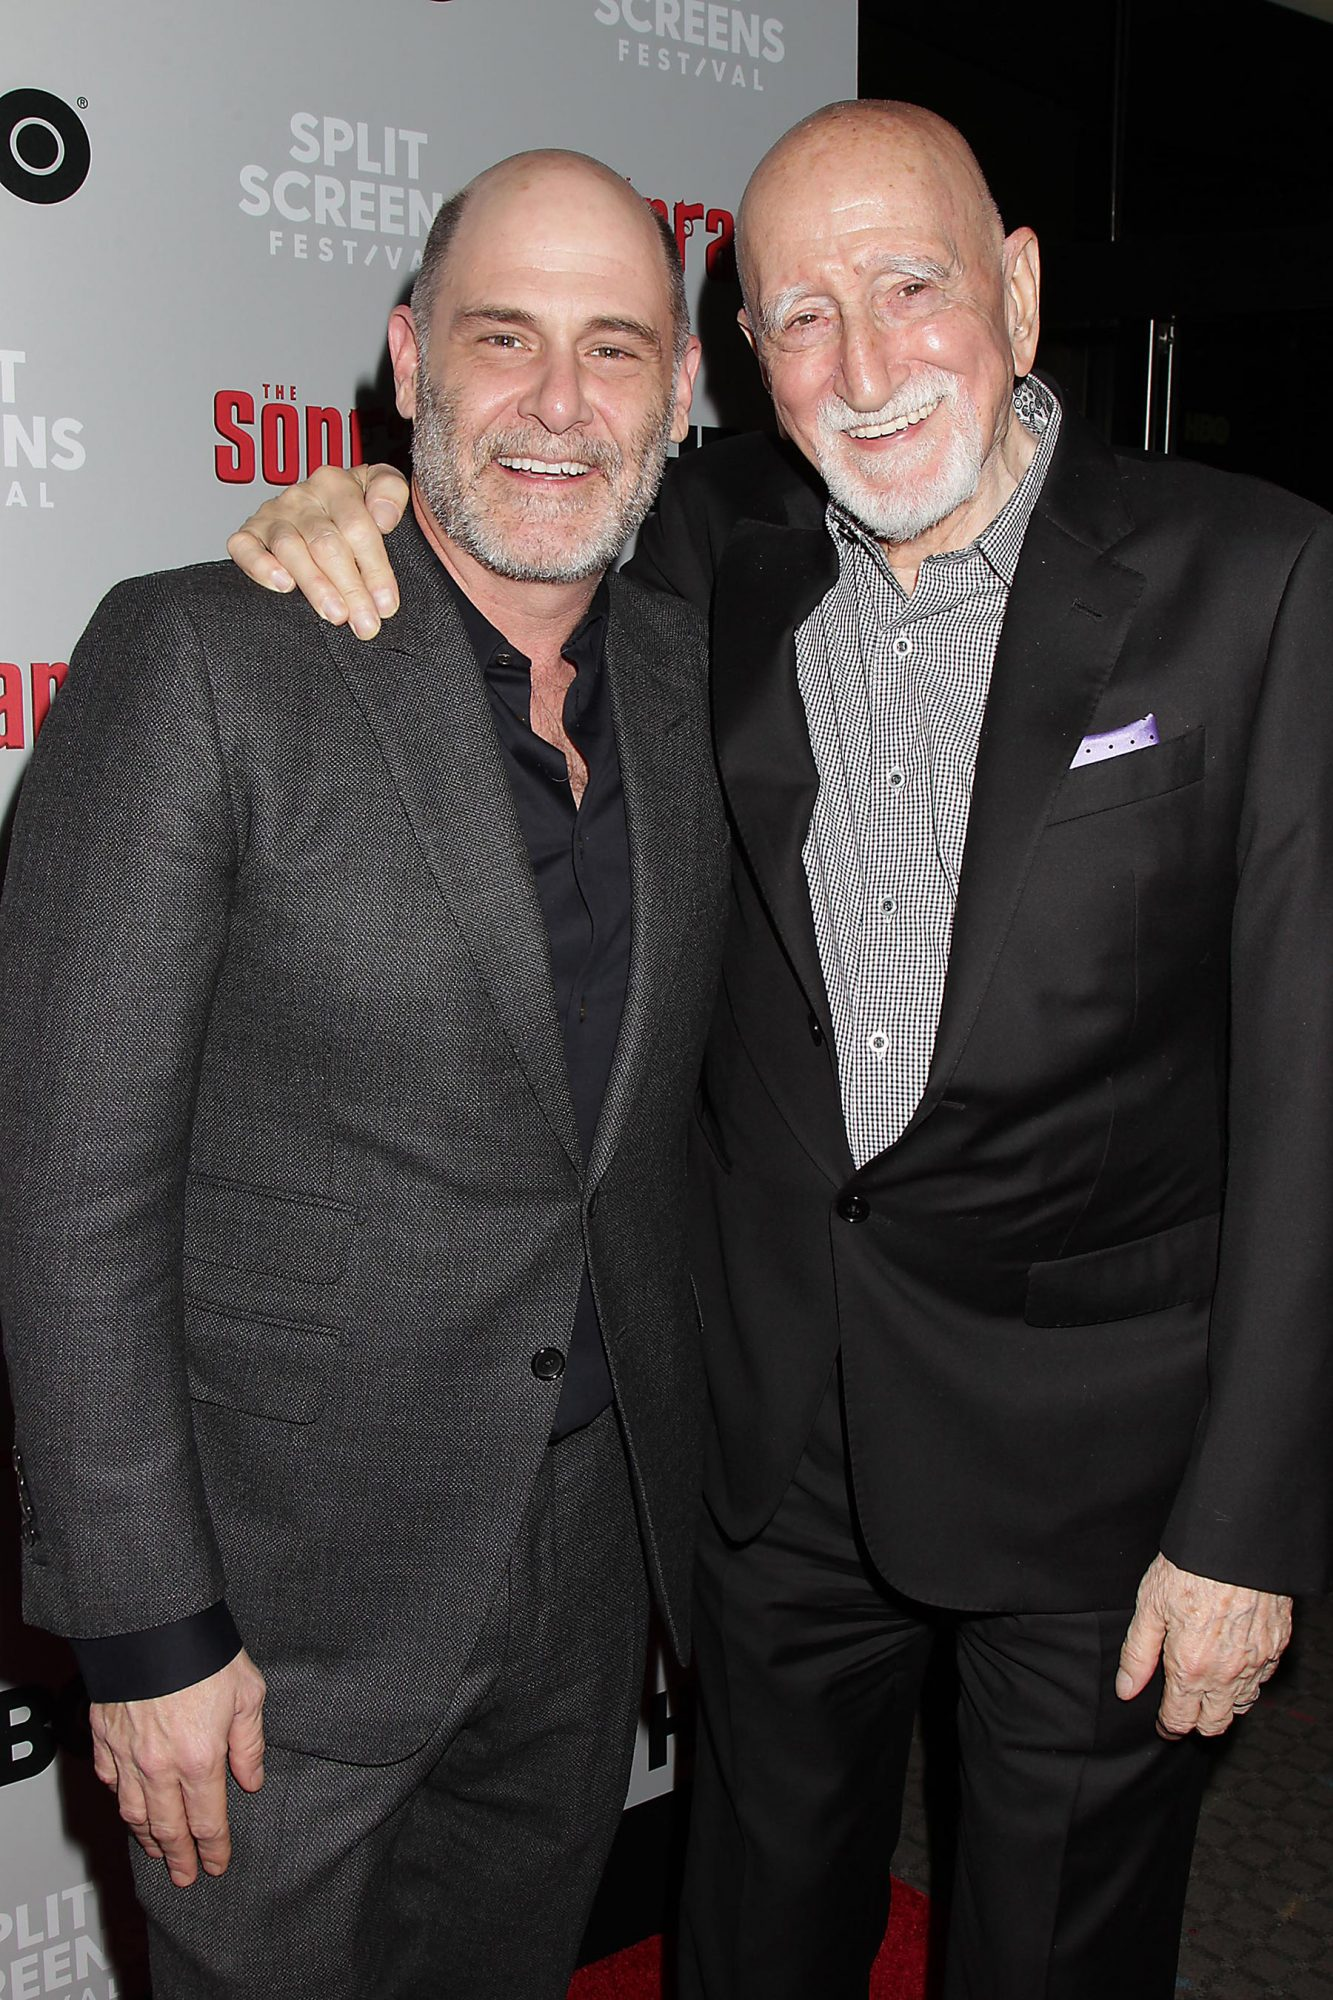 """HBO Presents 'THE SOPRANOS 20TH ANNIVERSARY"""" Red Carpet and Panel Discussion, New York, USA - 09 Jan 2019"""